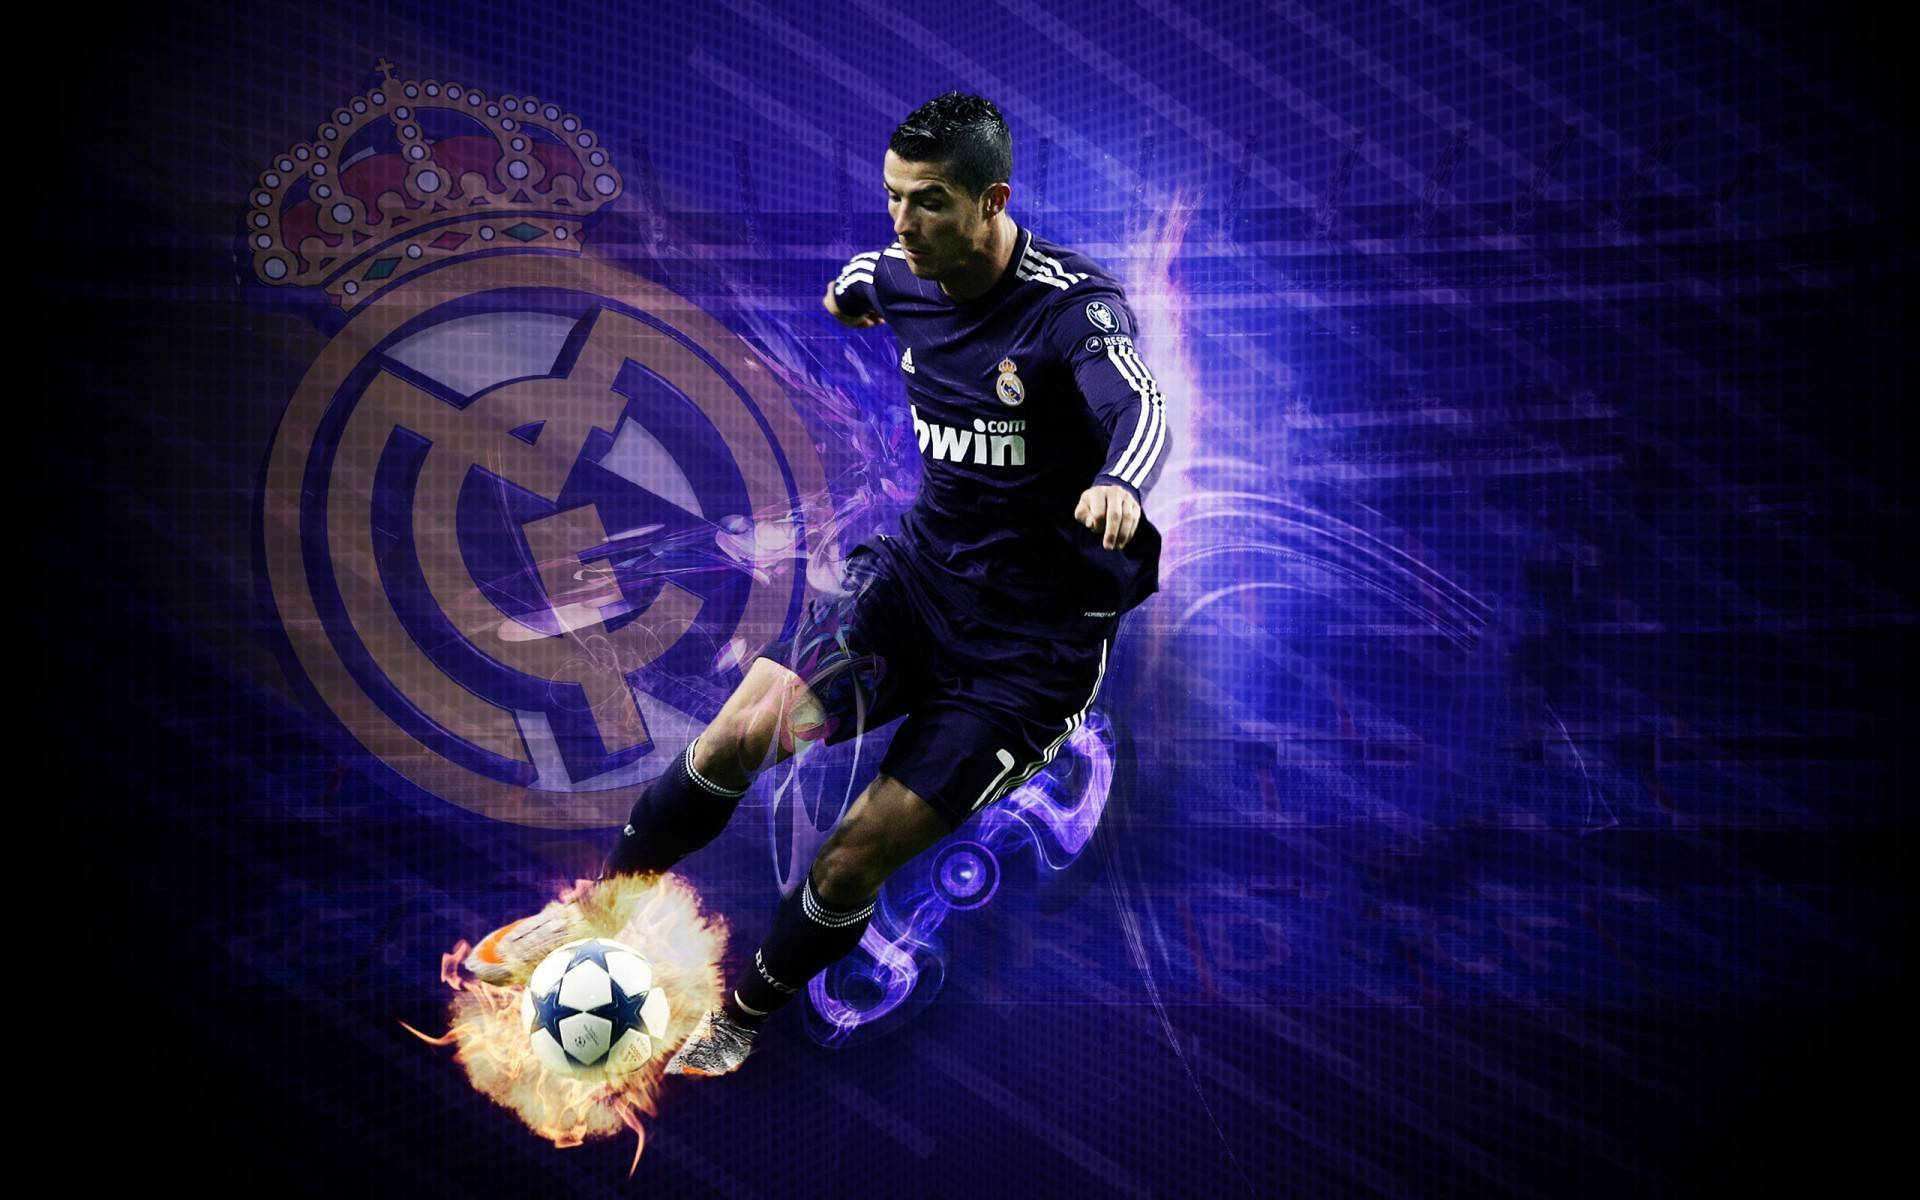 1920x1200 - Soccer Wallpapers 16